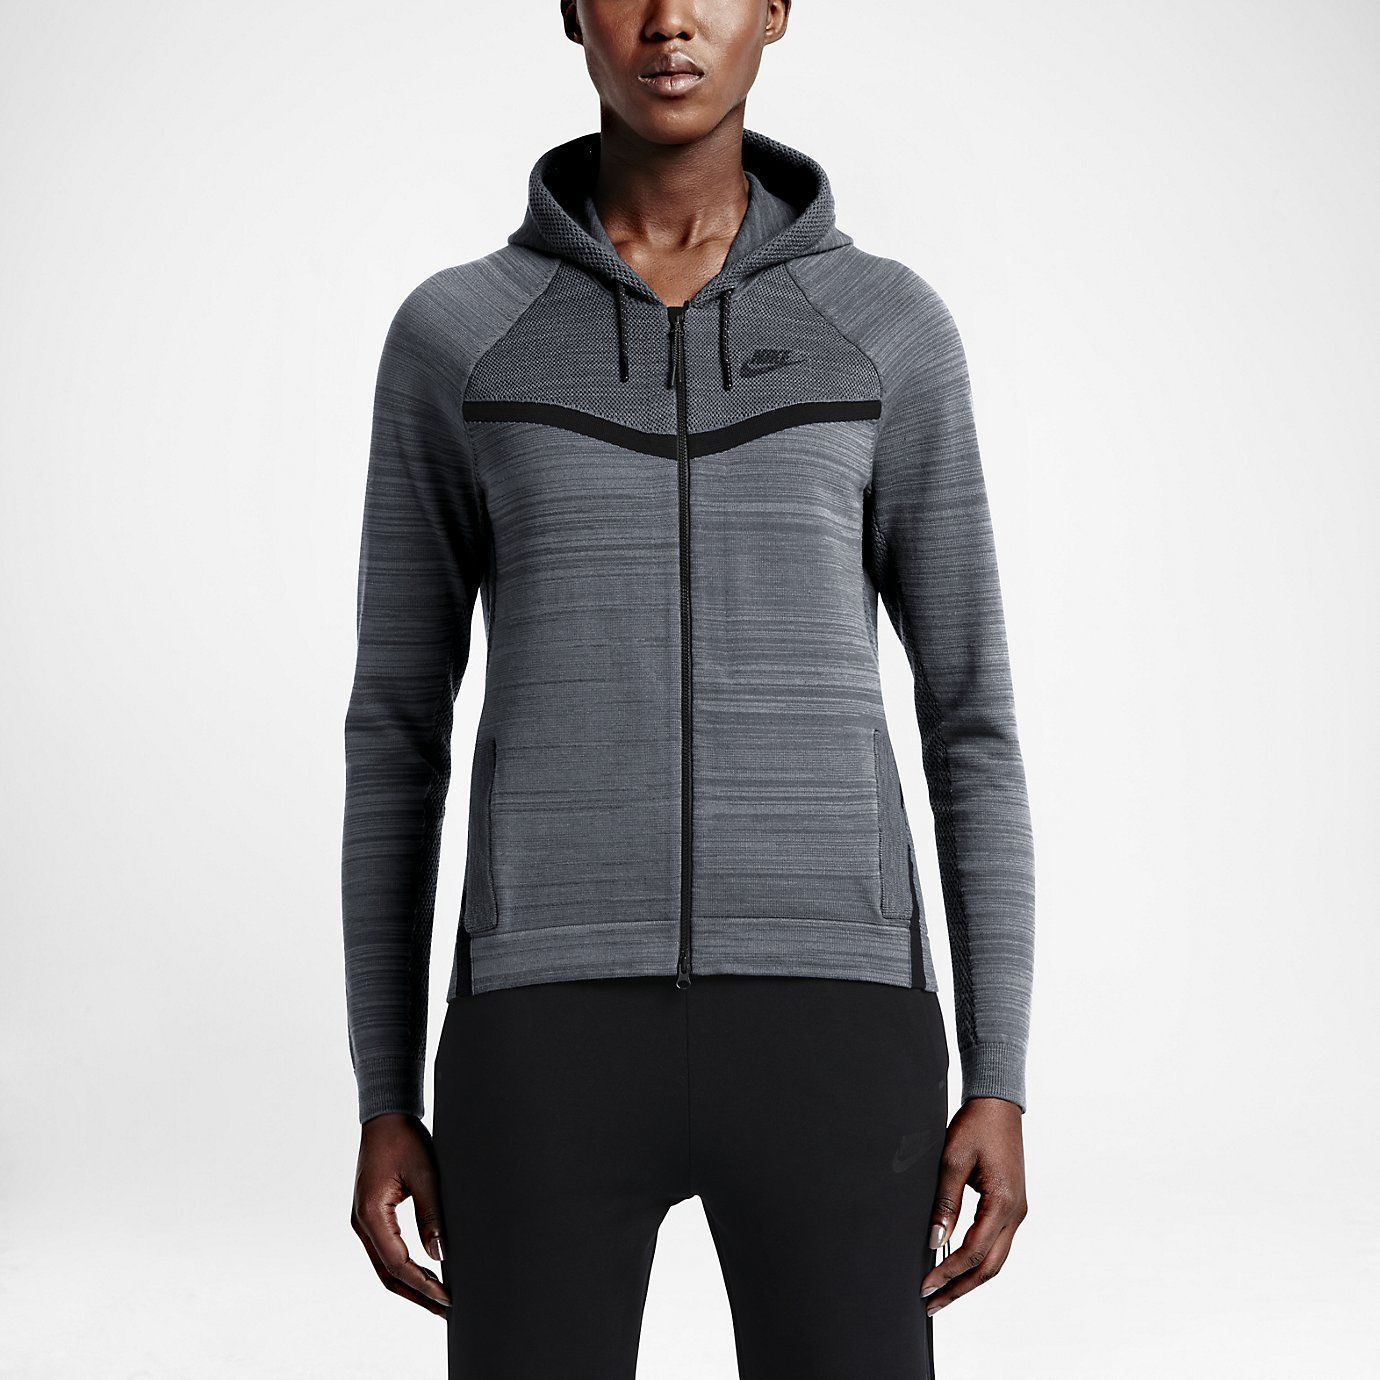 NEW COMFY Nike Tech Knit Windrunner Flyknit Jacket Grey